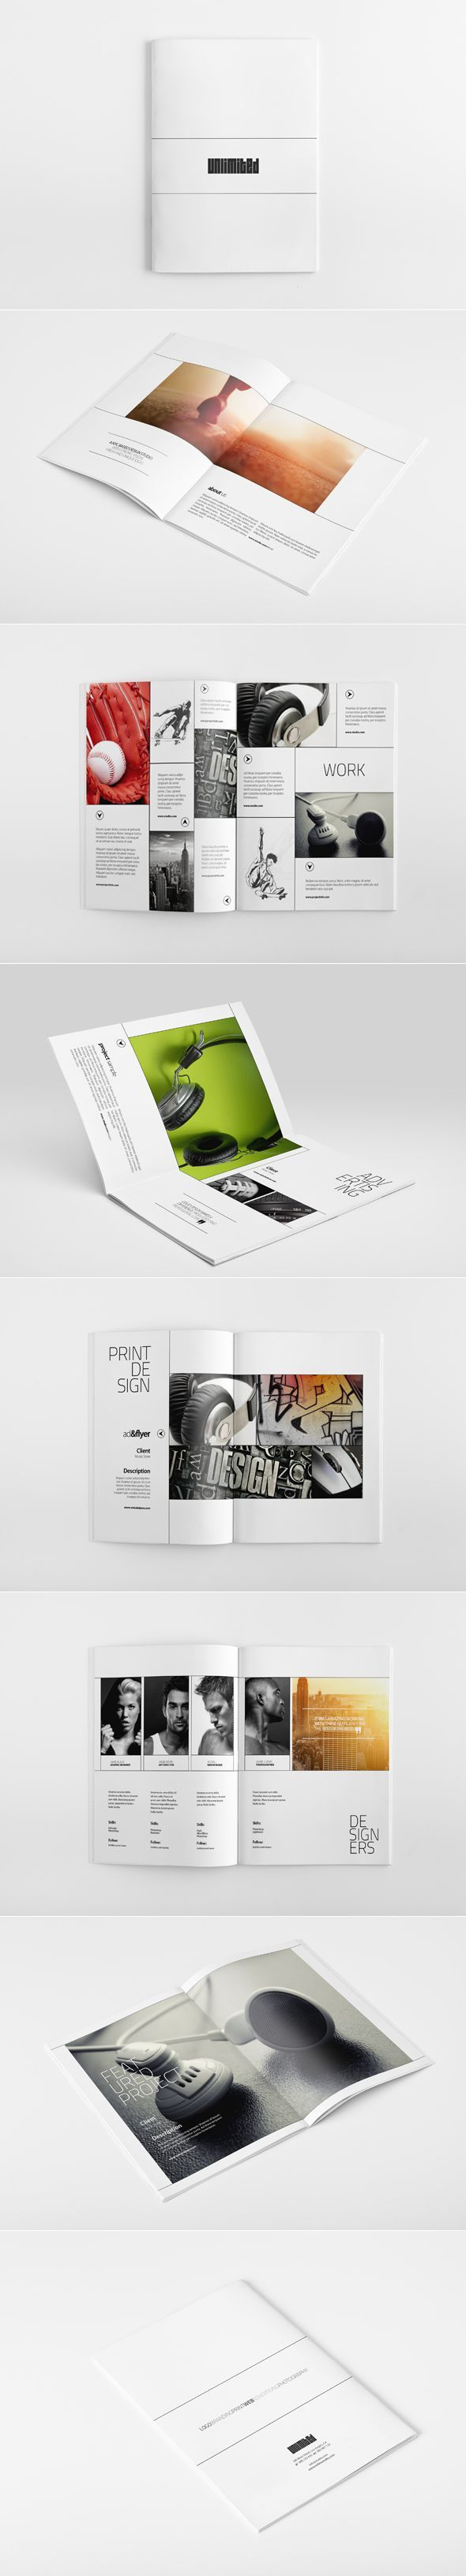 Photo Book Layout Grid Design Graphic Typography